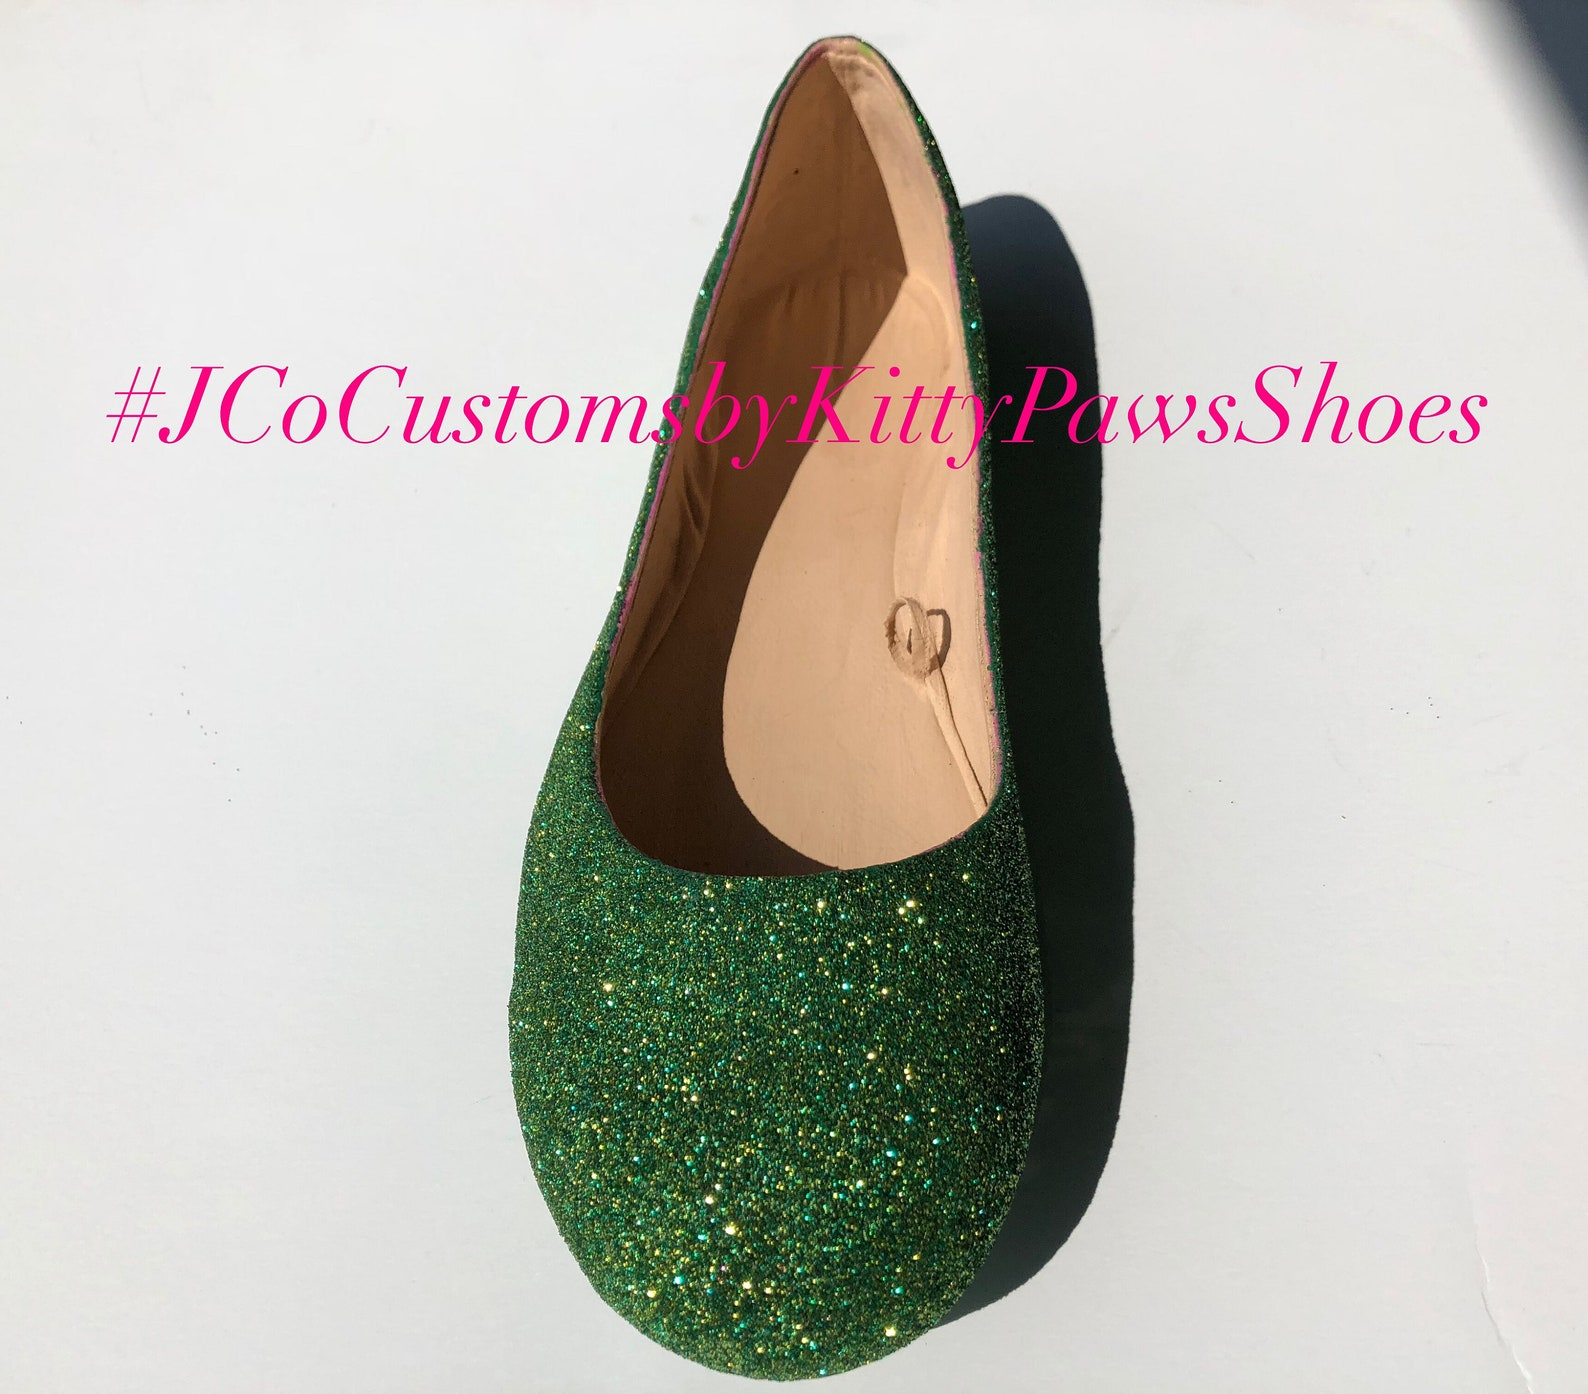 bridal ballet green flats custom women's emerald &gold glitter flats w/shimmer bottoms *free u.s. shipping* jco.customs by k